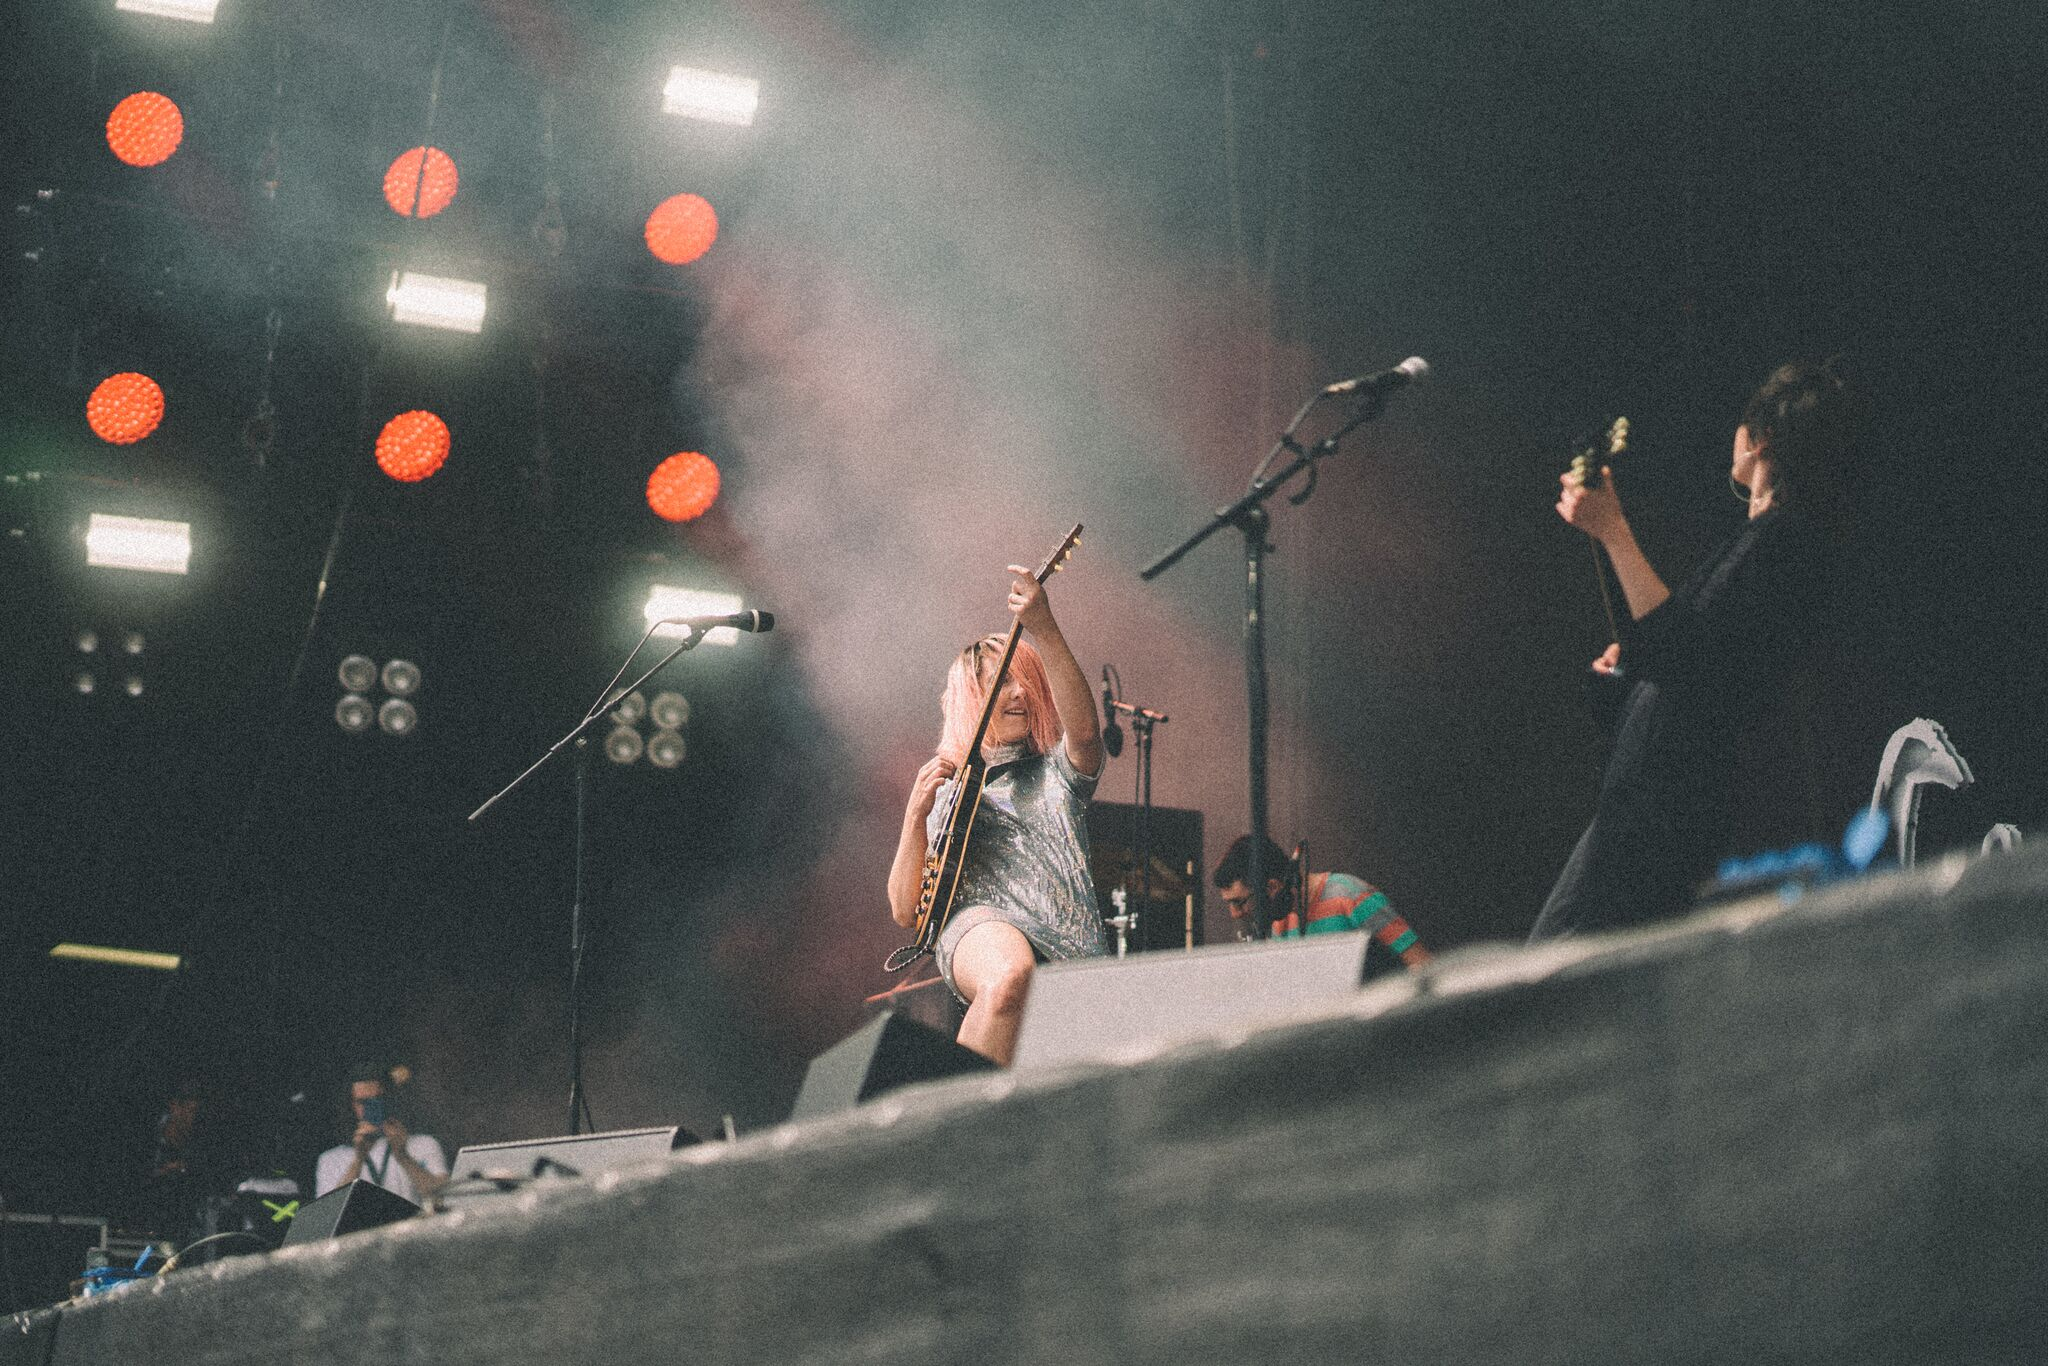 Also at Rock am Ring, trying to play so loud that Damon can hear us... (Pic by Rowan Allen)